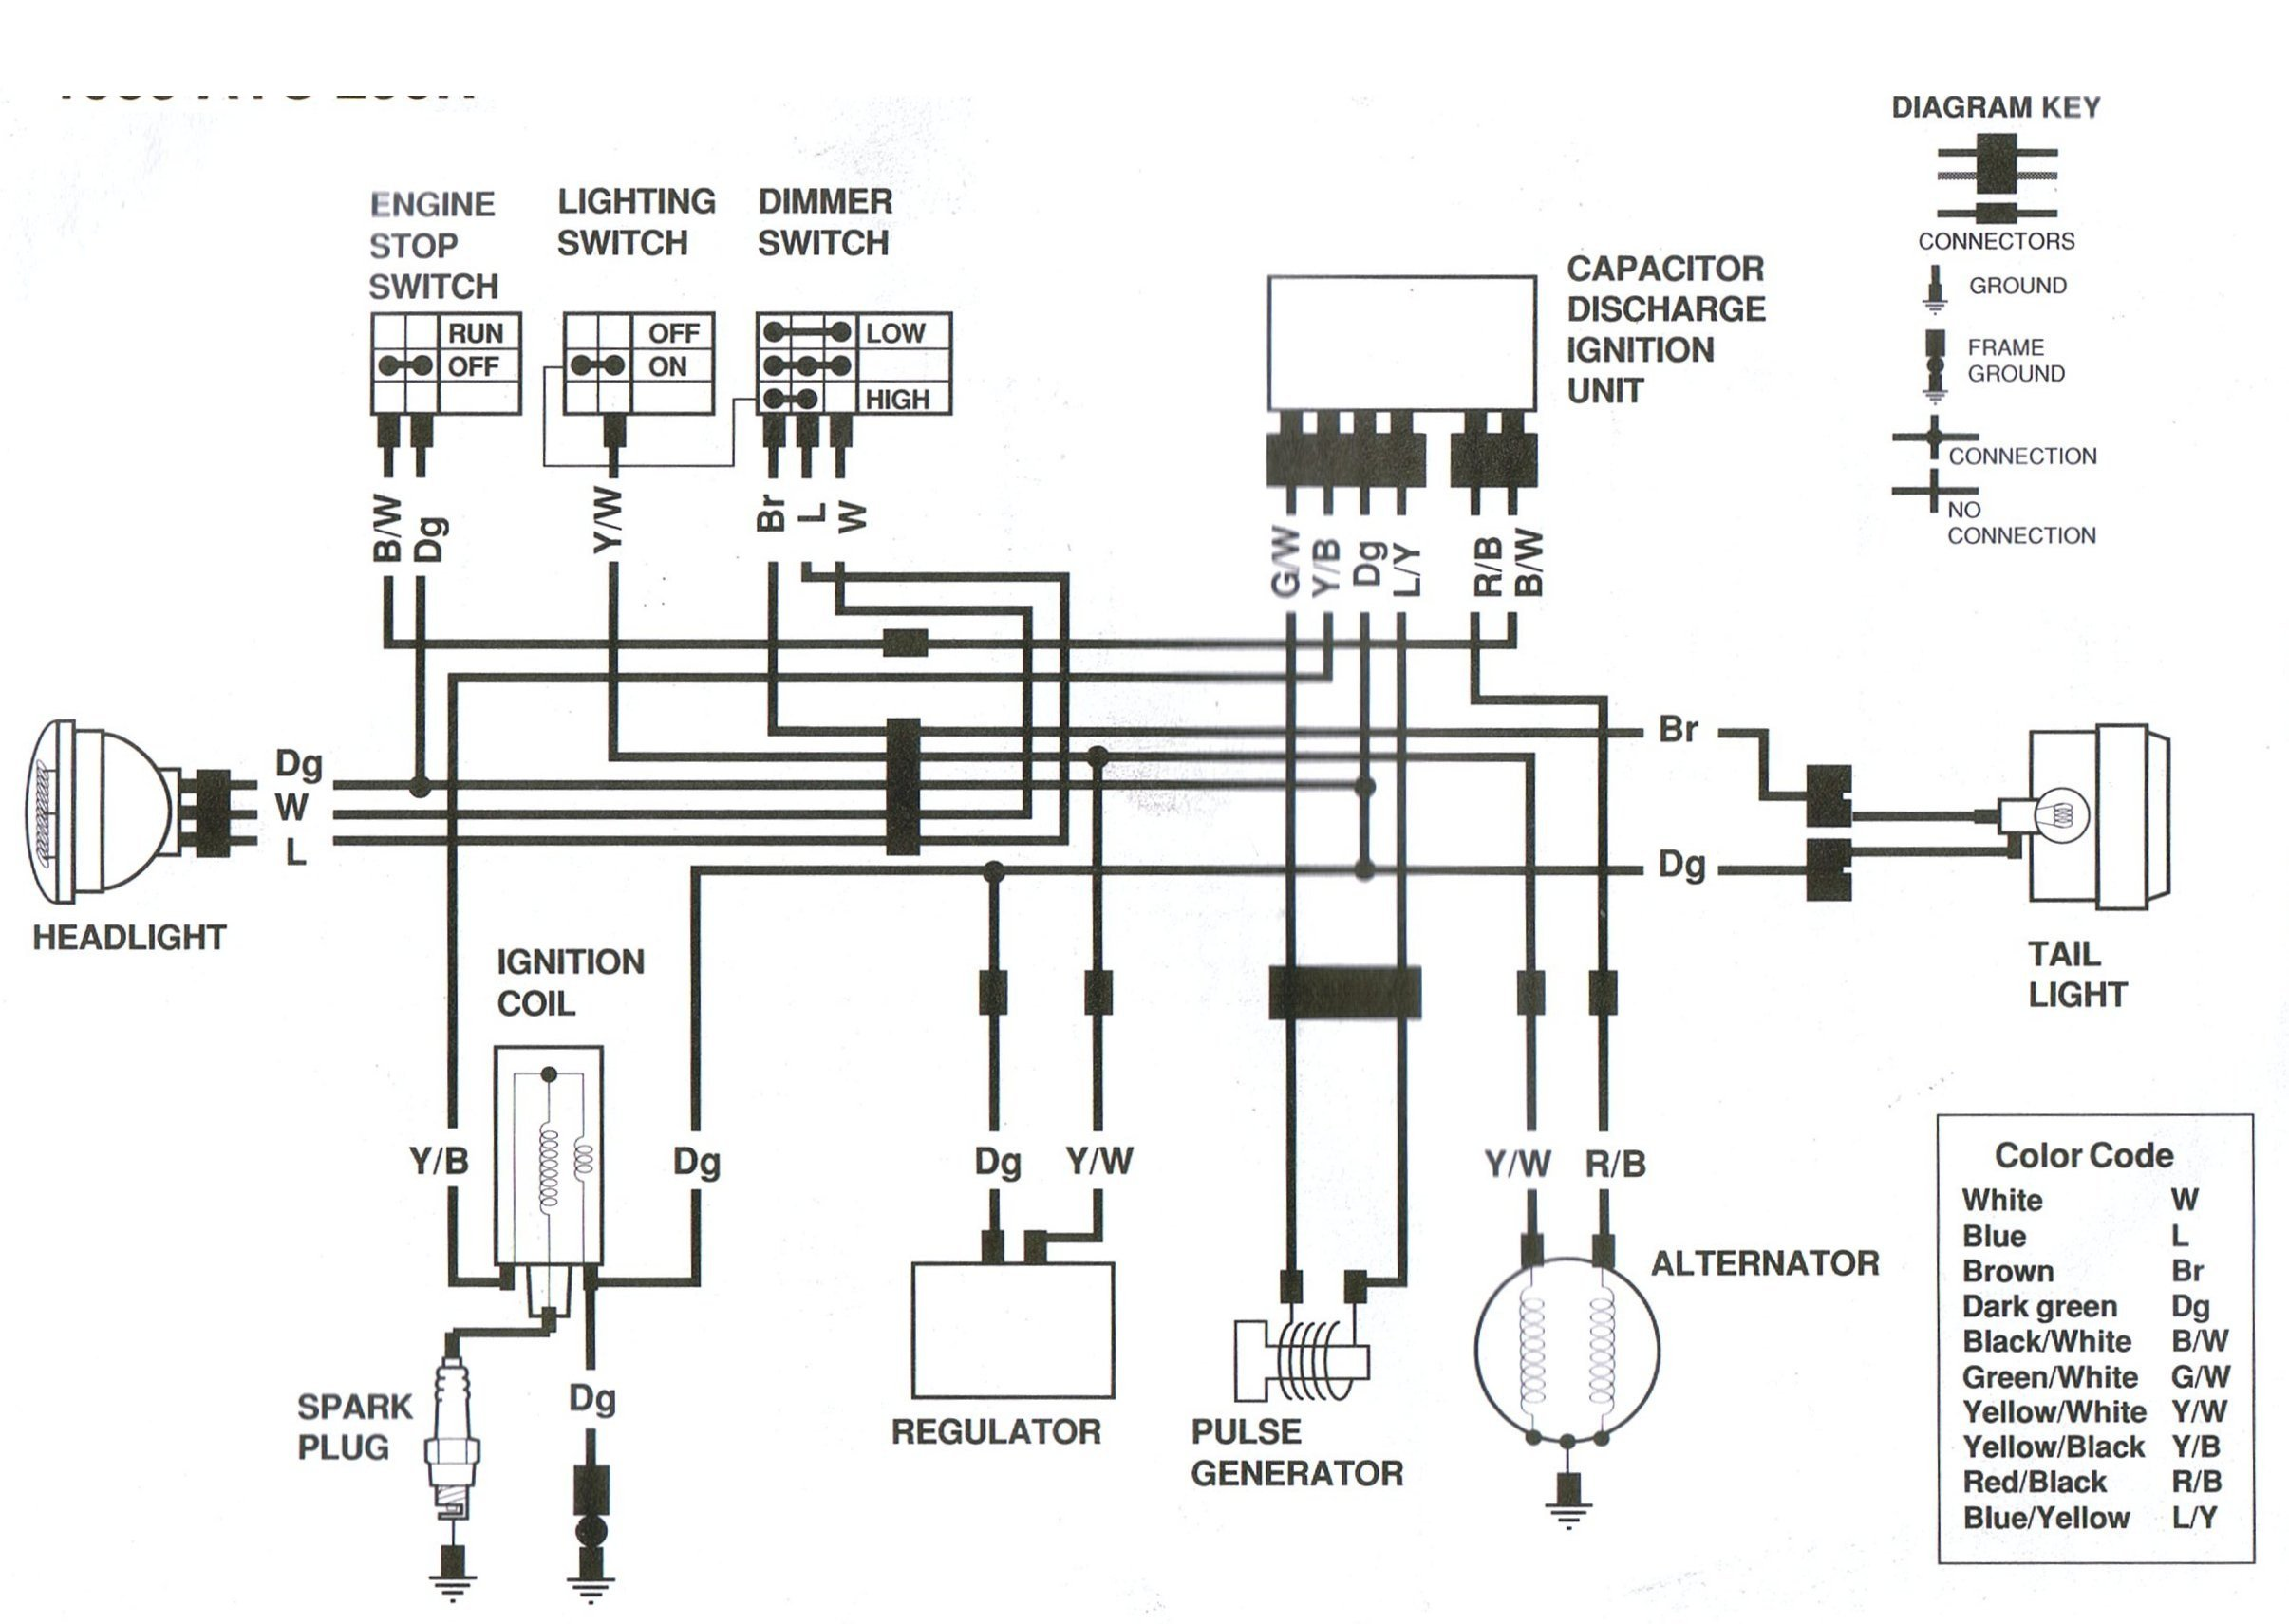 need fuse box diagram of 1985 ford f250 del Schaltplan